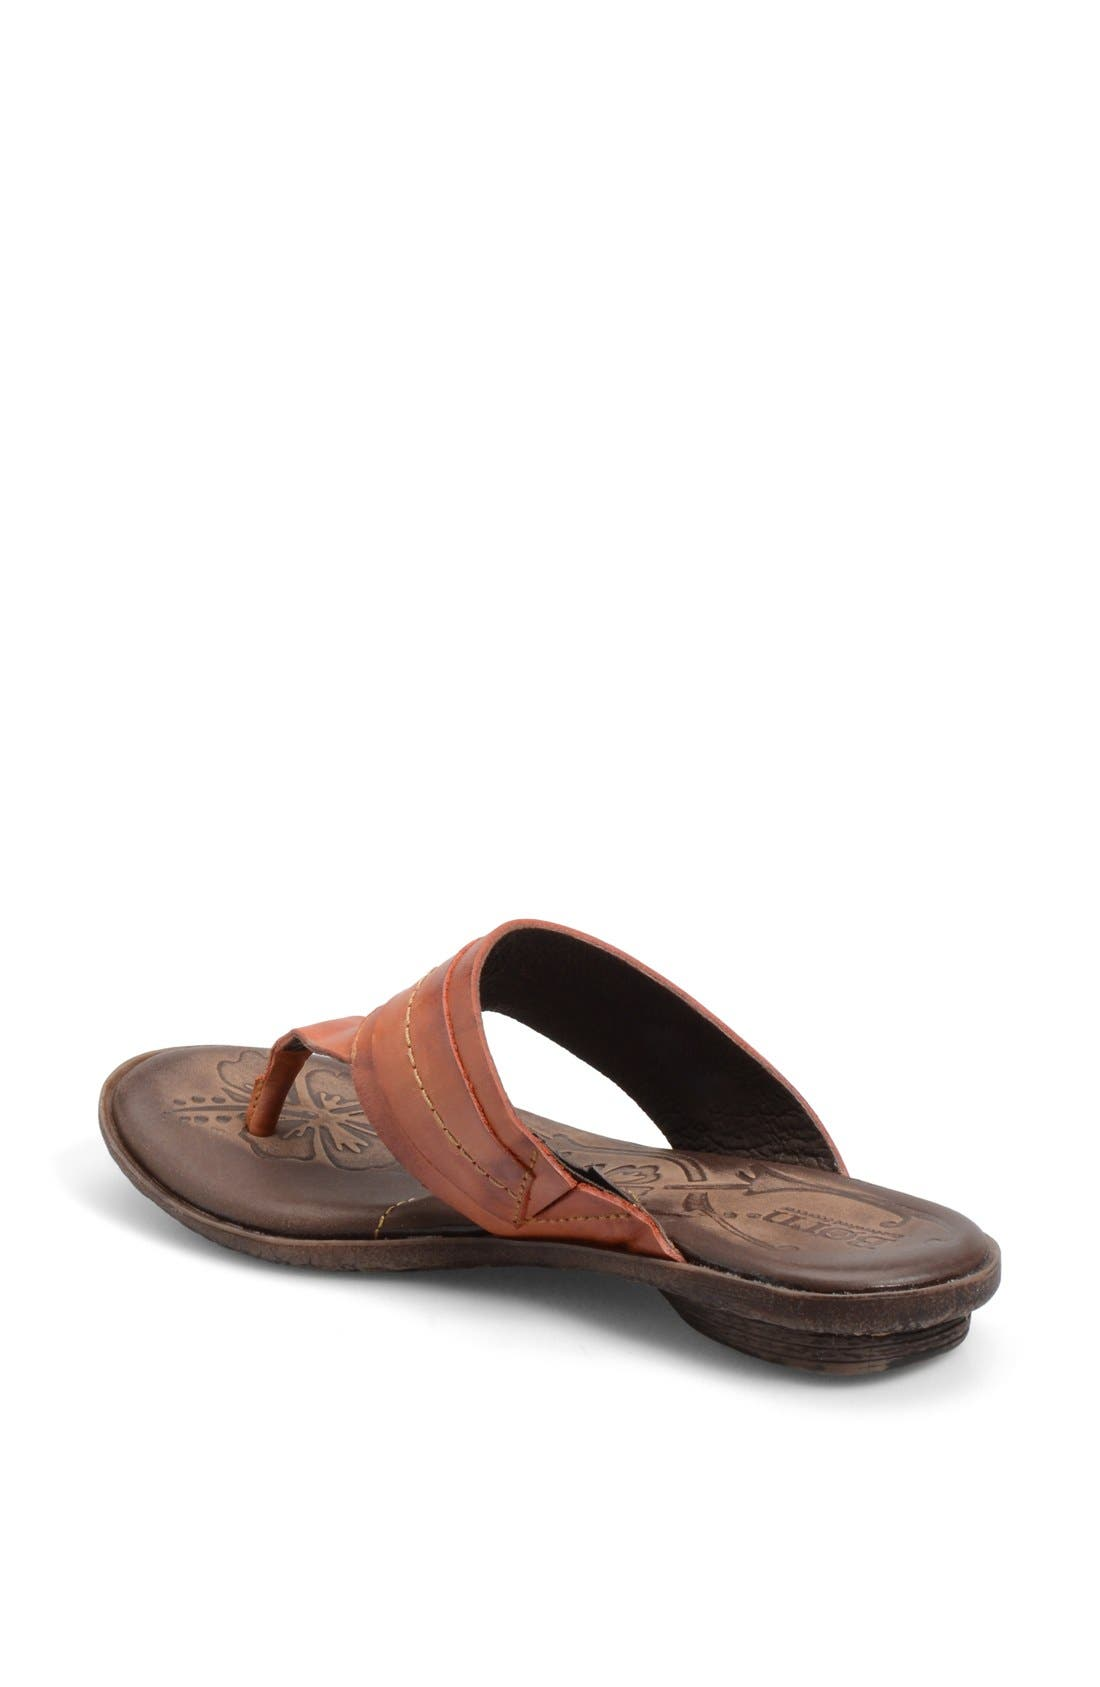 Alternate Image 2  - Børn 'Tai' Sandal (Women)